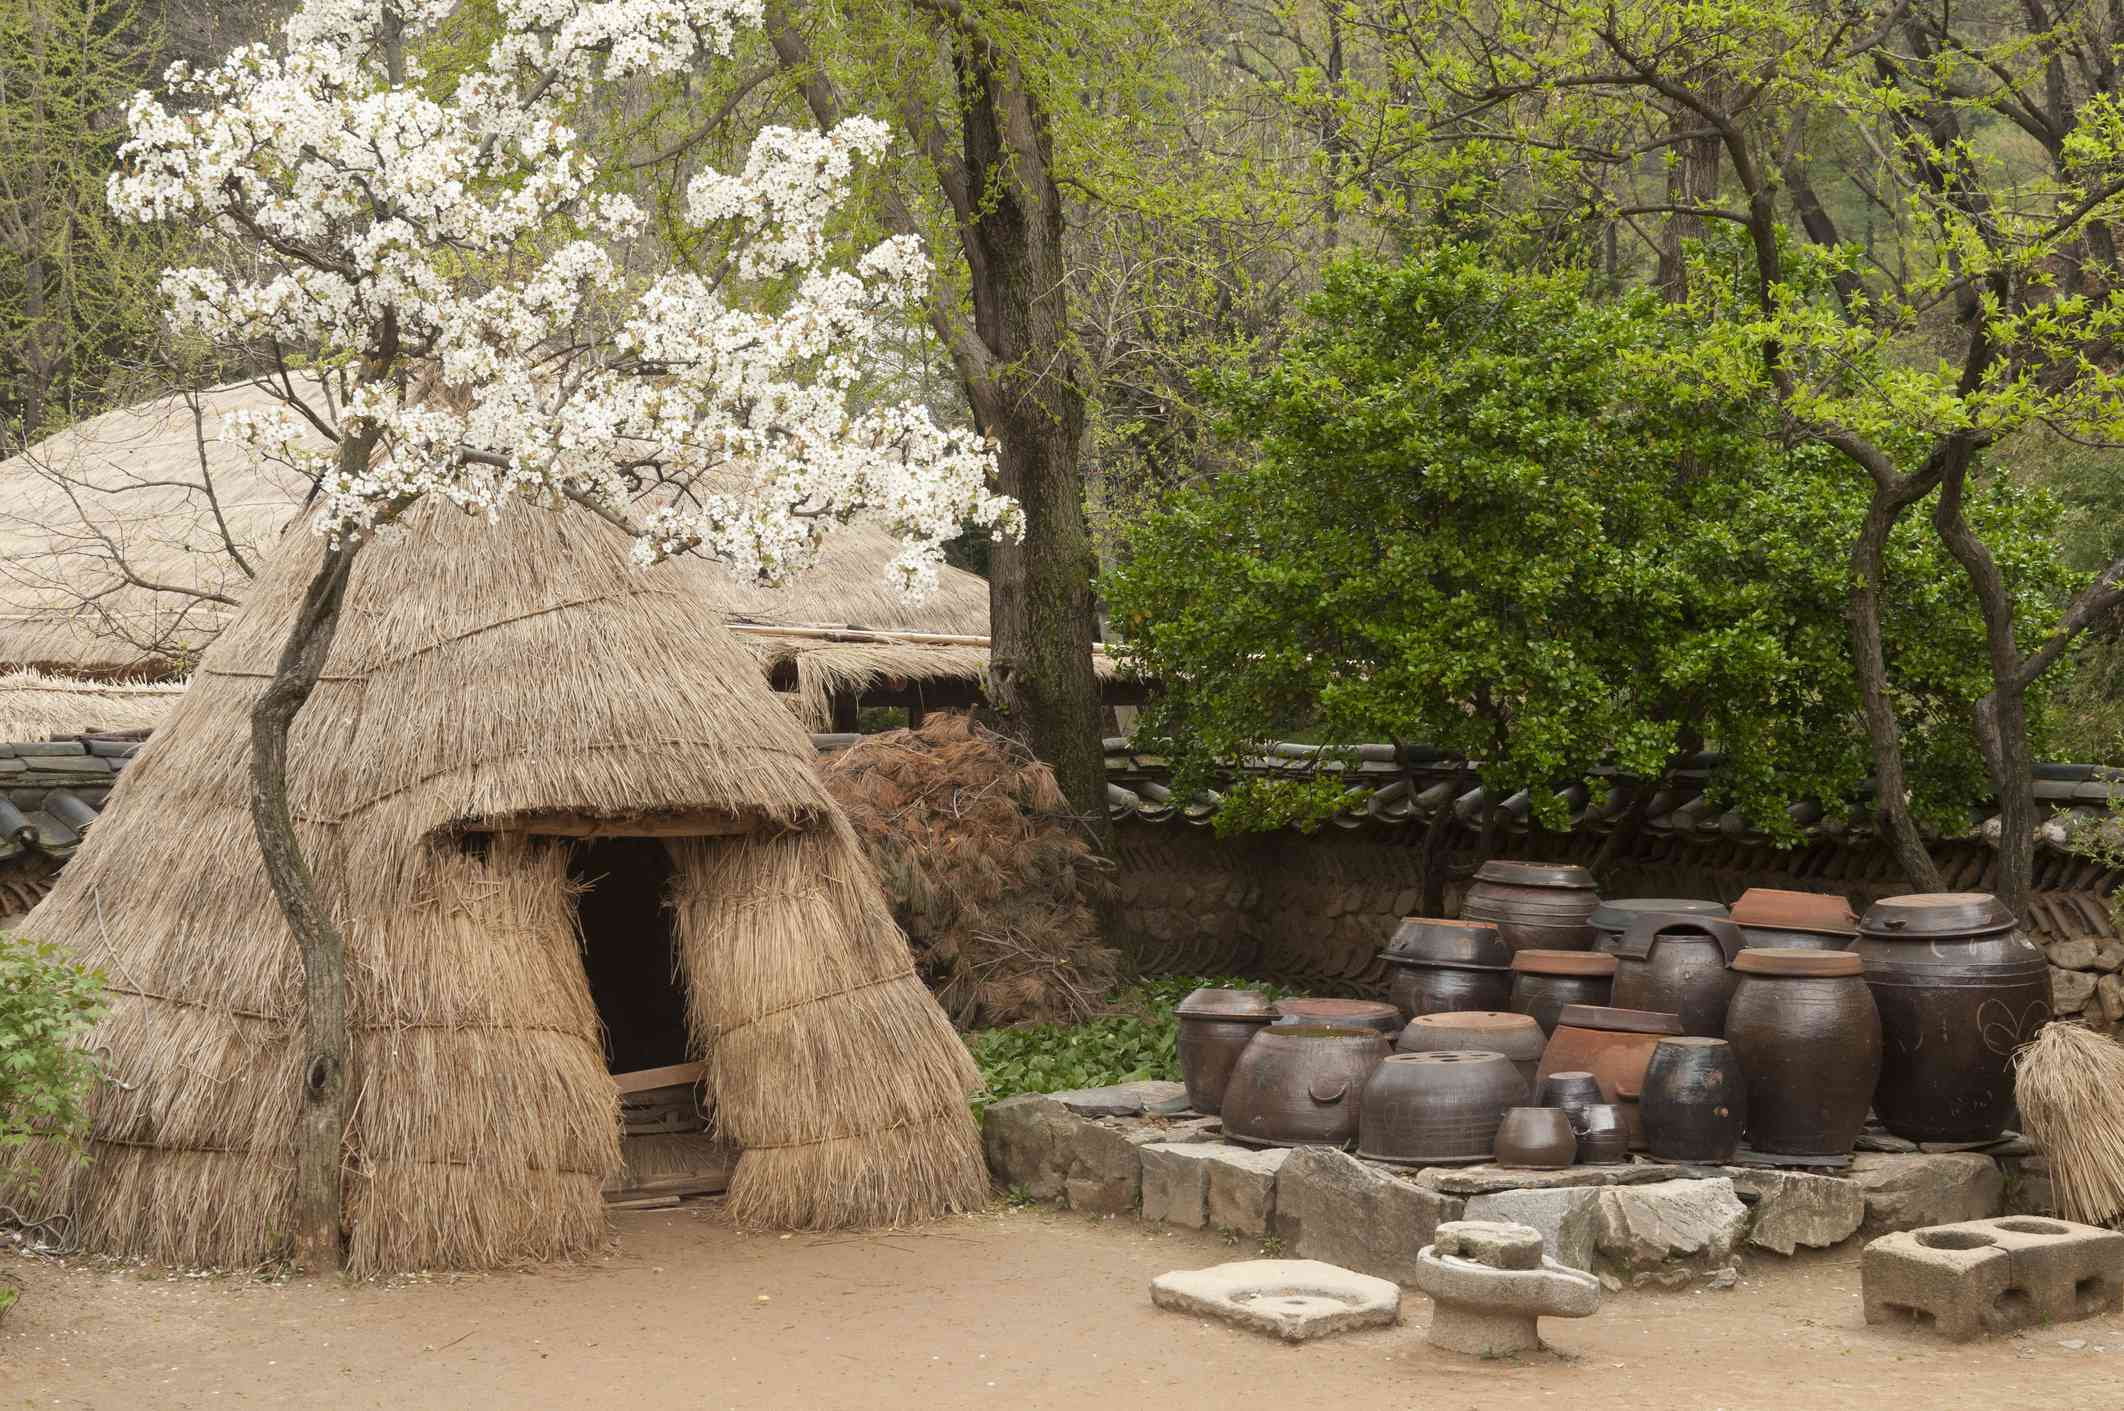 Pottery and pottery making tools with blossoms, Korean Folk Village, Cheung-gu